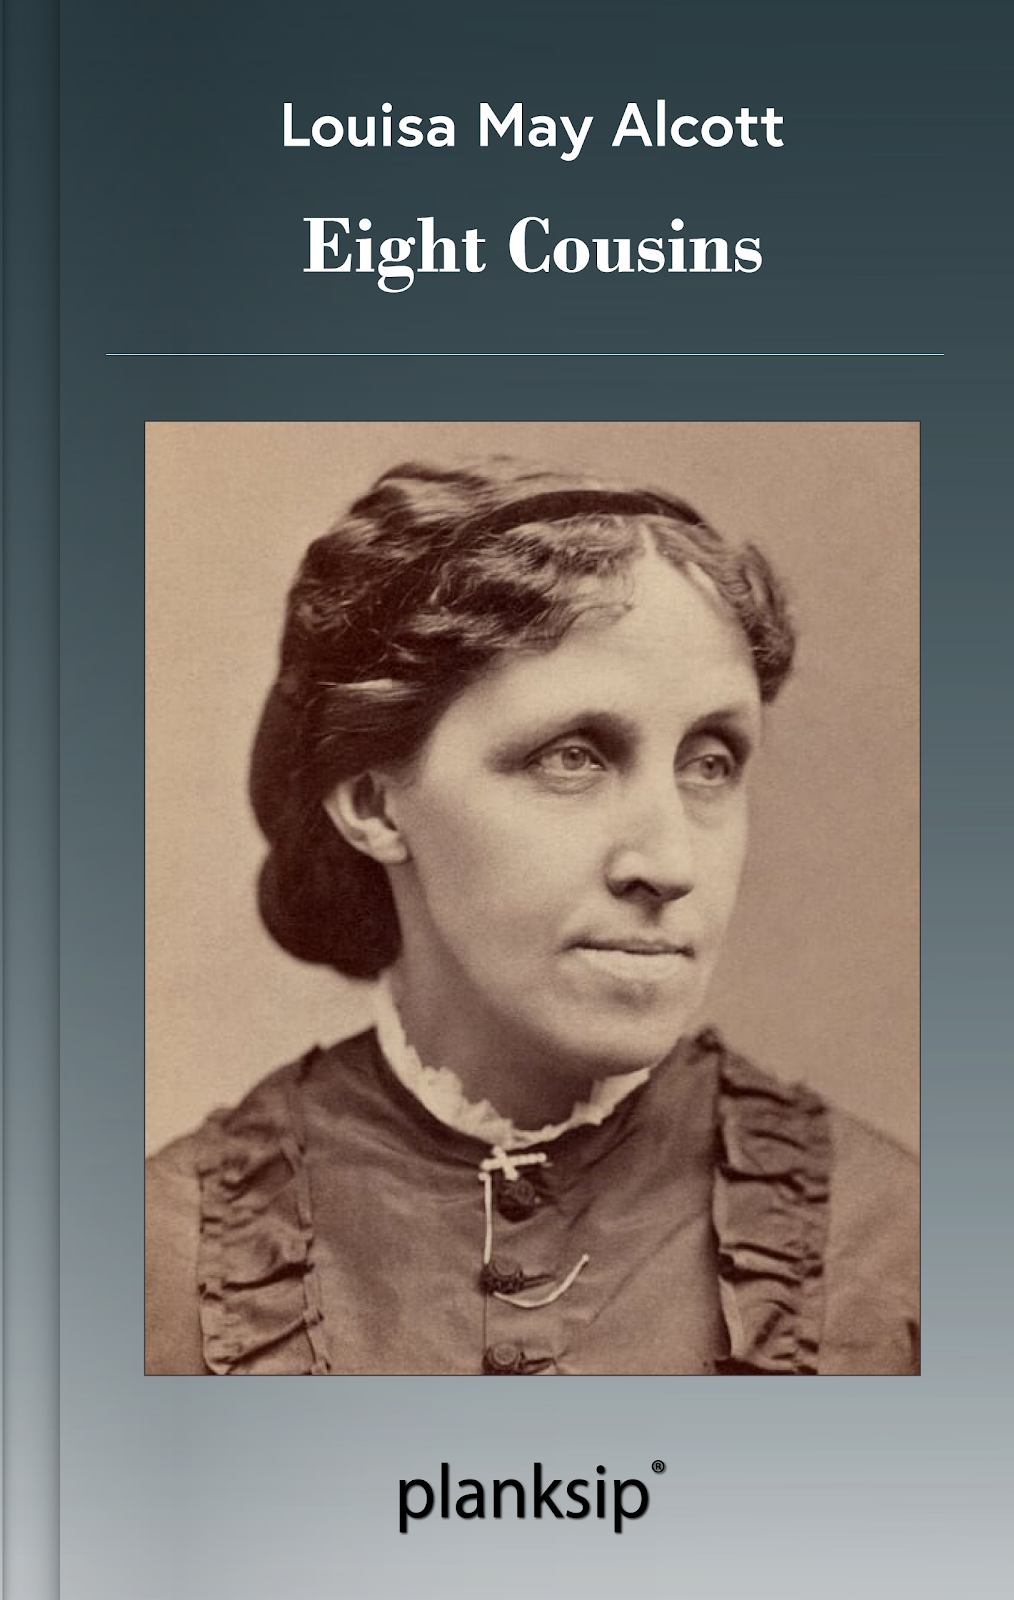 Eight Cousins by Louisa May Alcott (1832-1888). Published by planksip